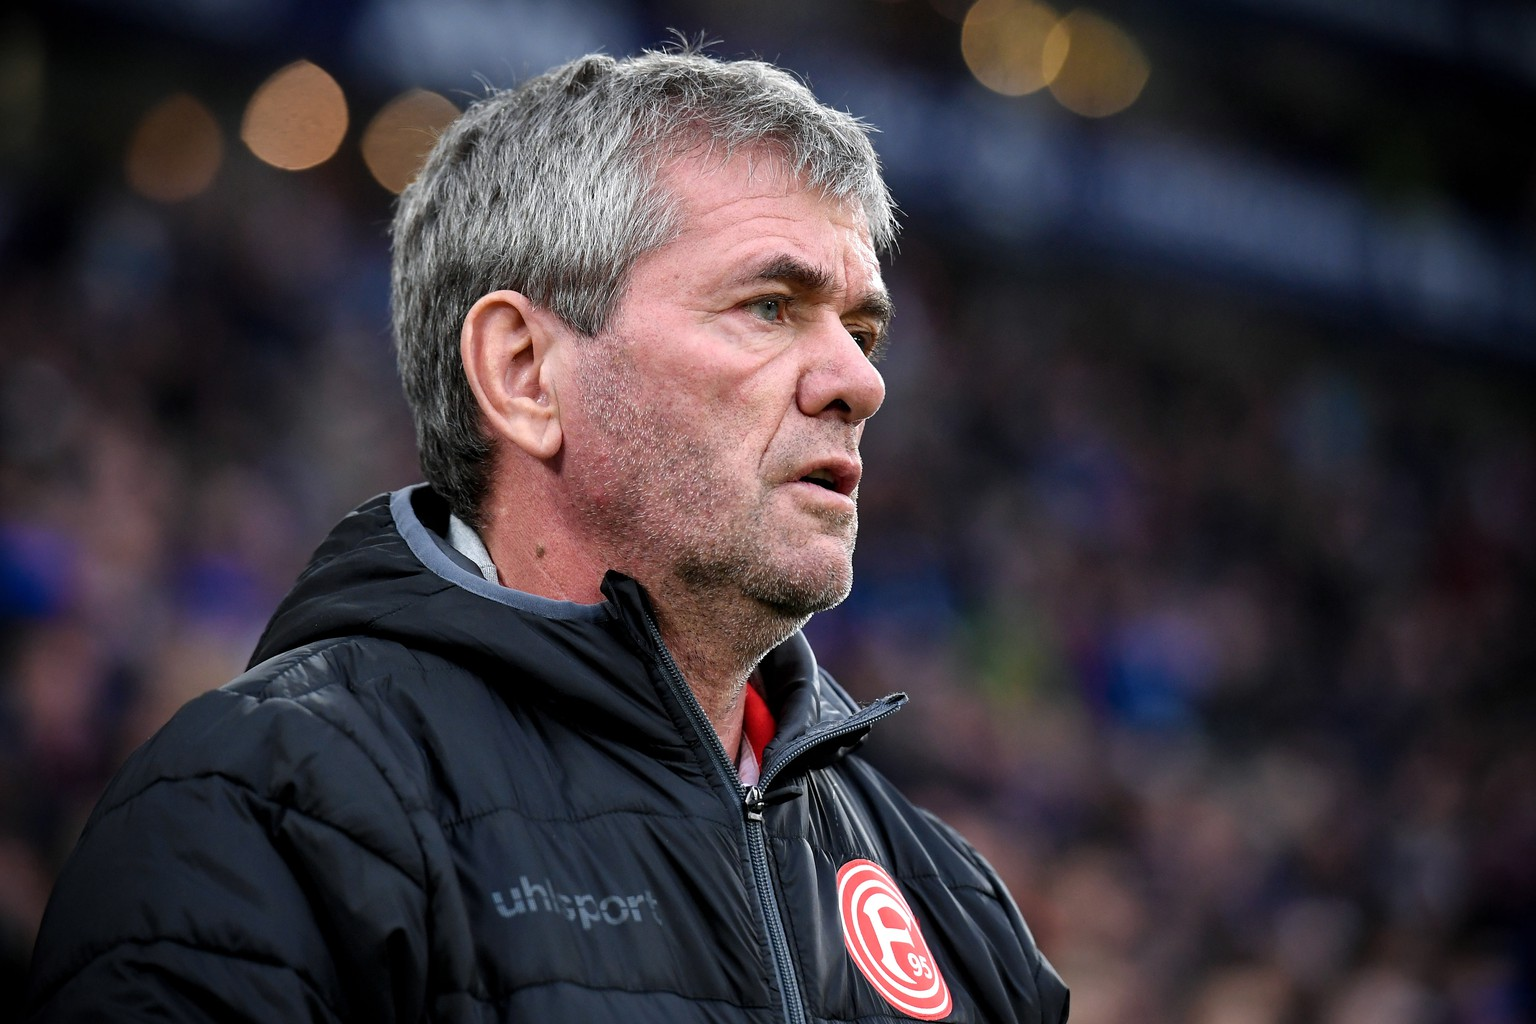 epa07983719 Duesseldorf's head coach Friedhelm Funkel prior to the German Bundesliga soccer match between FC Schalke 04 and Fortuna Duesseldorf in Gelsenkirchen, Germany, 09 November 2019.  EPA/SASCHA STEINBACH CONDITIONS - ATTENTION: The DFL regulations prohibit any use of photographs as image sequences and/or quasi-video.